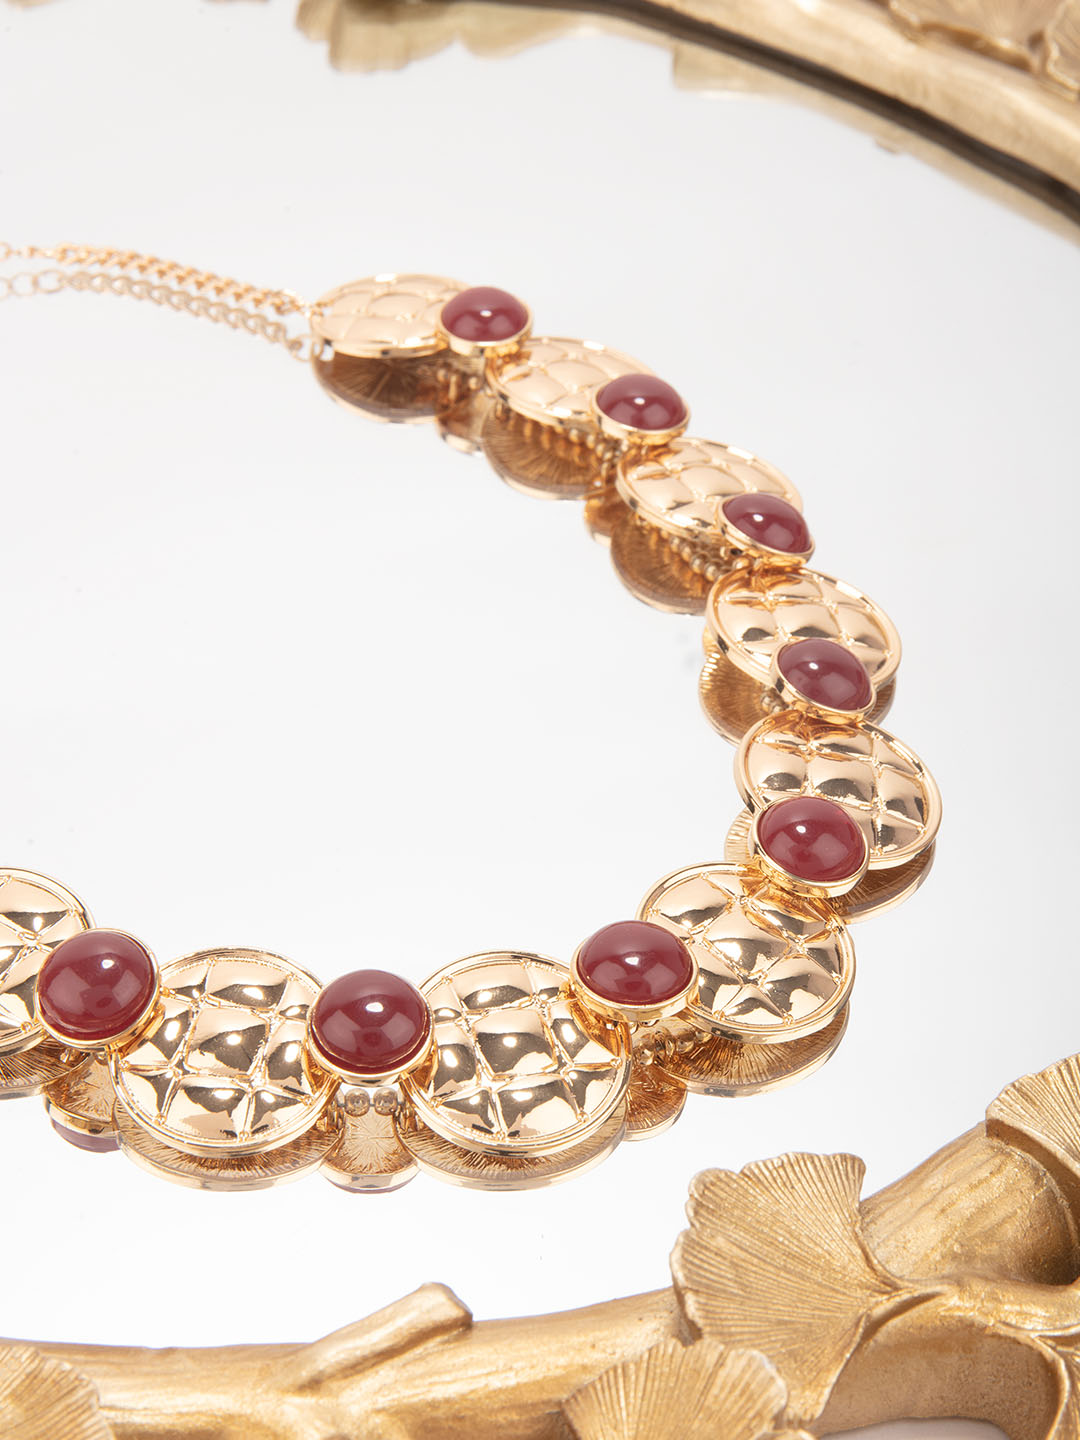 Lilly & sparkle | Lilly & Sparkle Alloy Gold Toned Candy Artificial Beads Statement Necklace for Women - Red